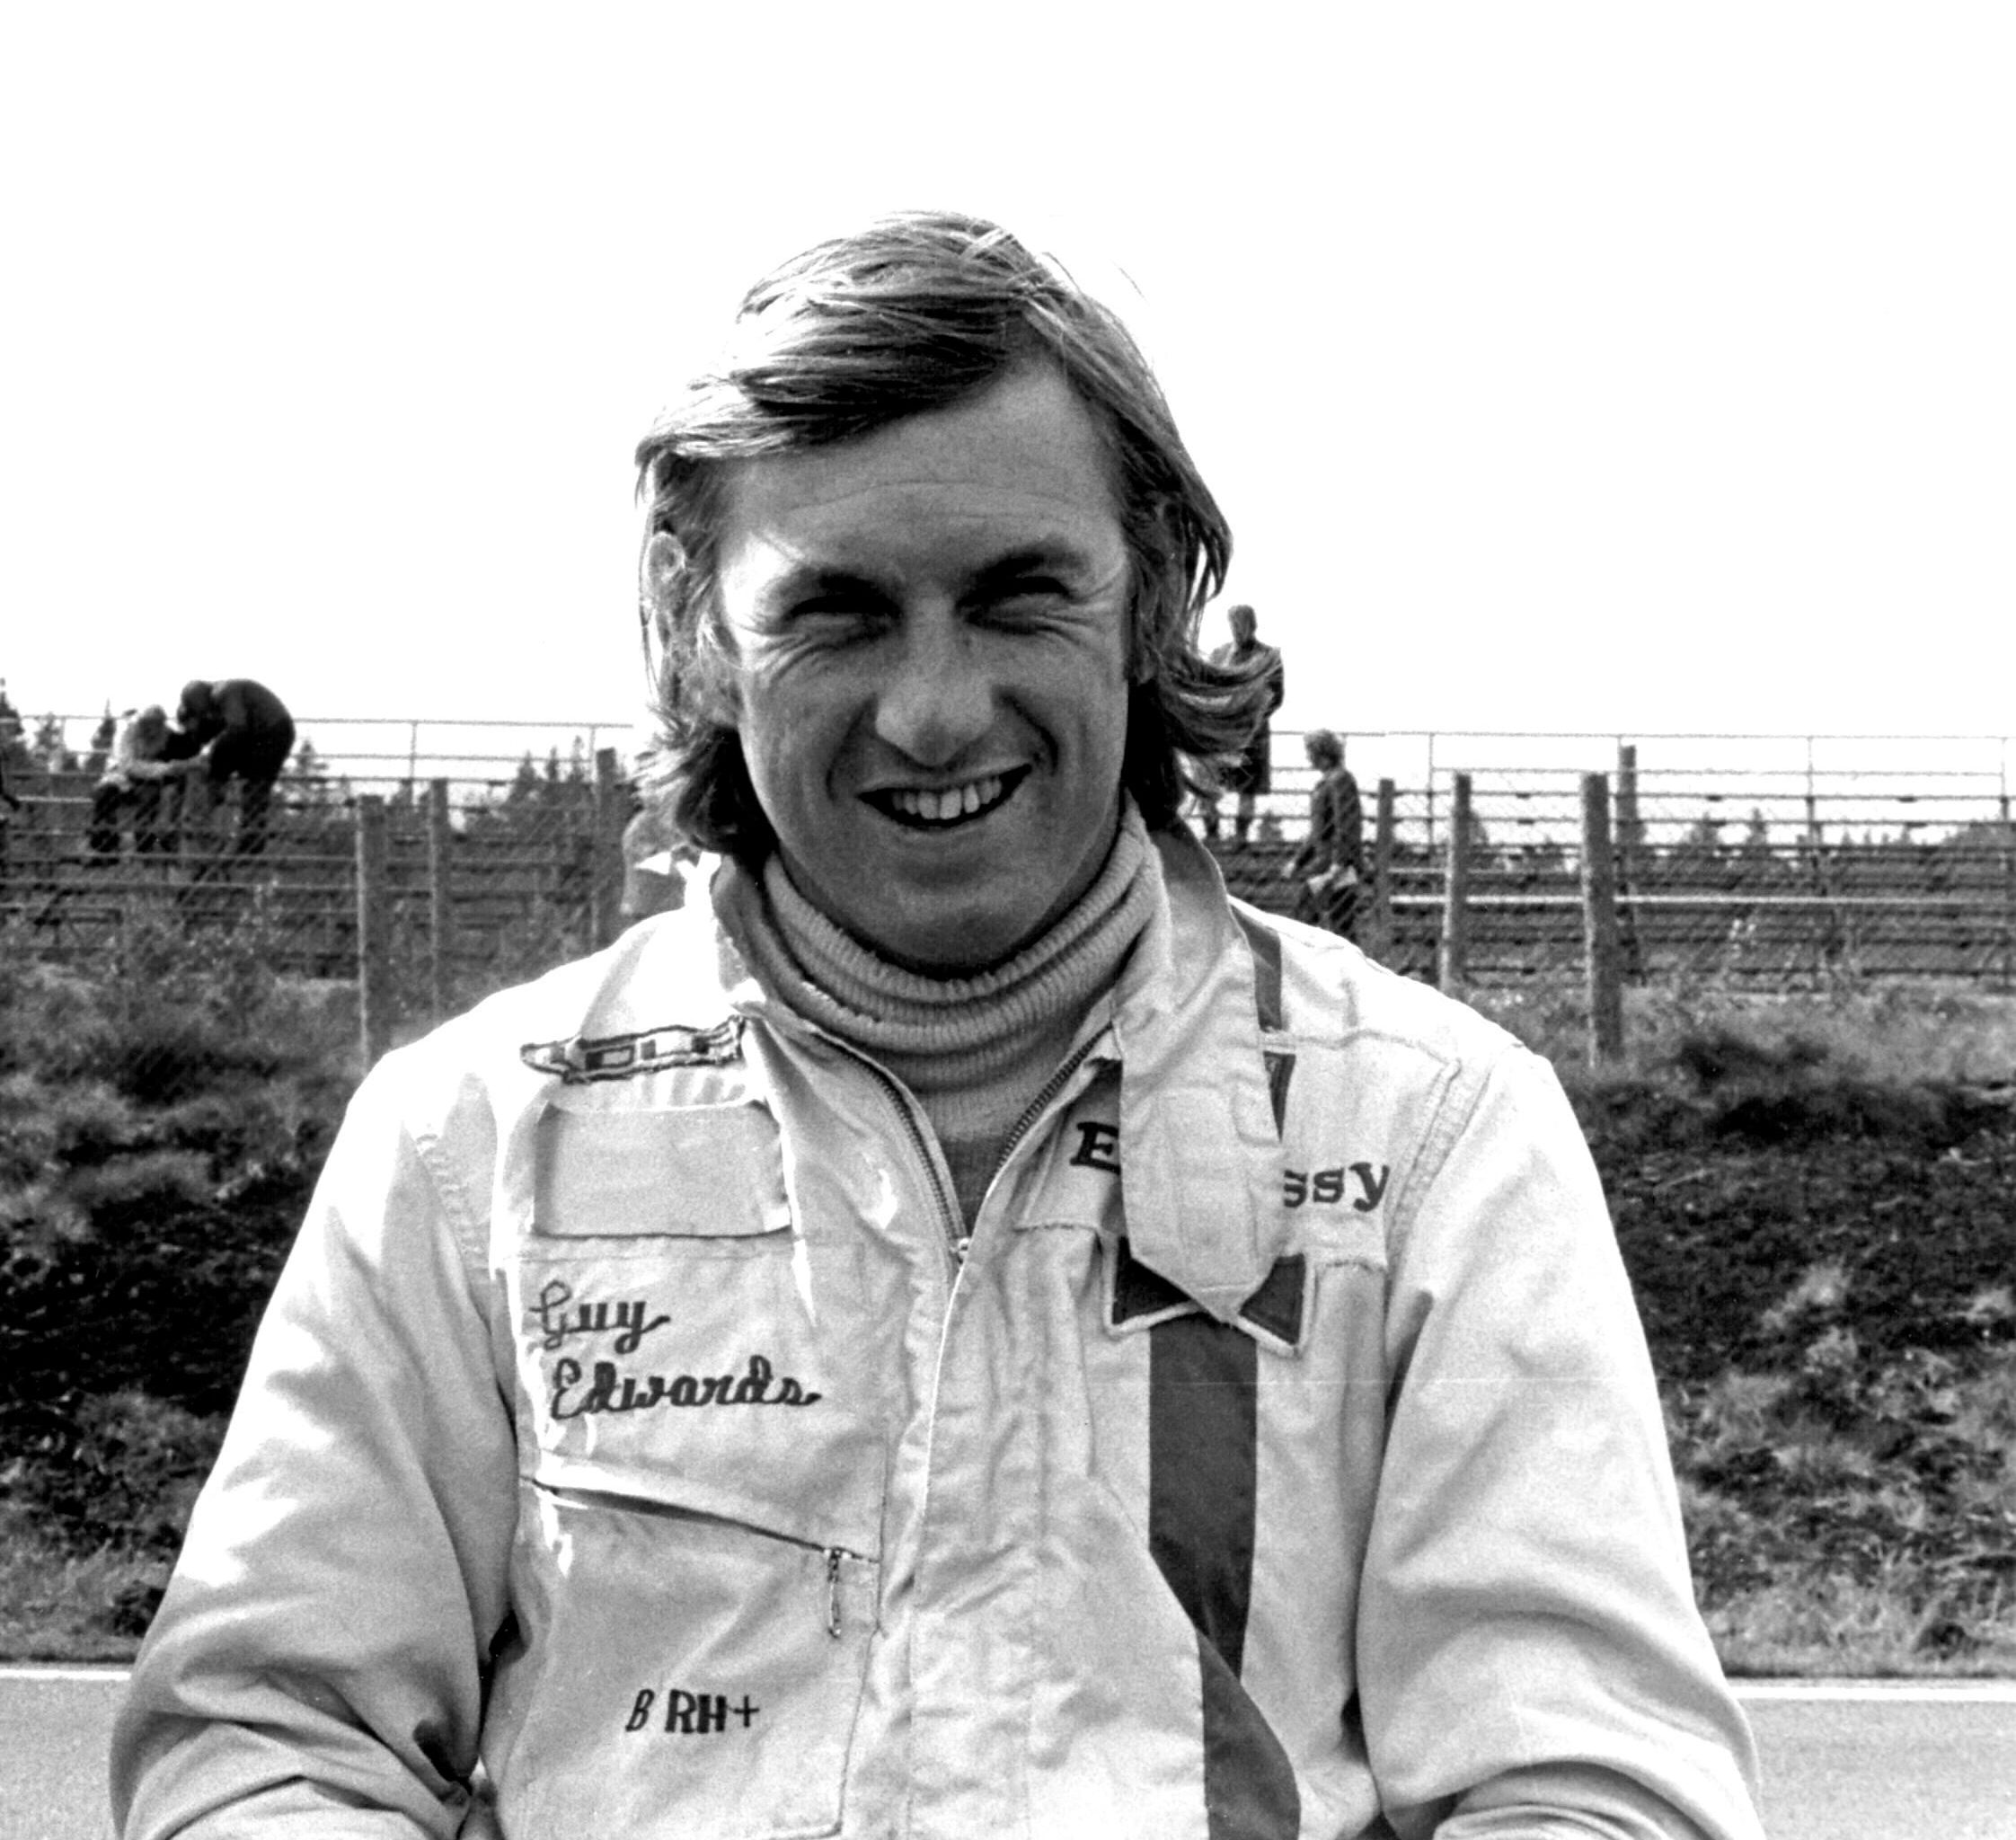 Edwards started 11 races in Formula One